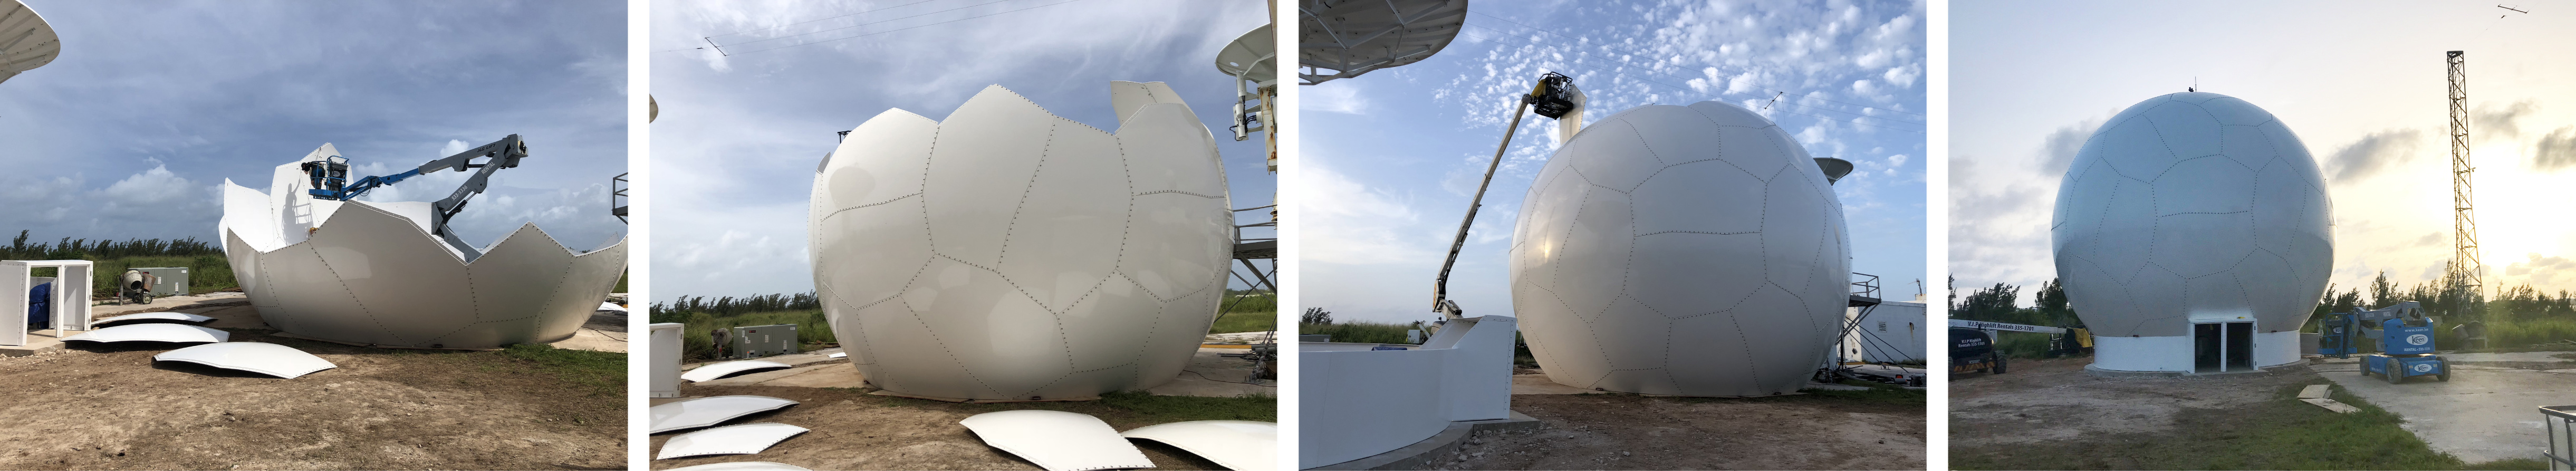 35ft Radome Installation in Bermuda 2018